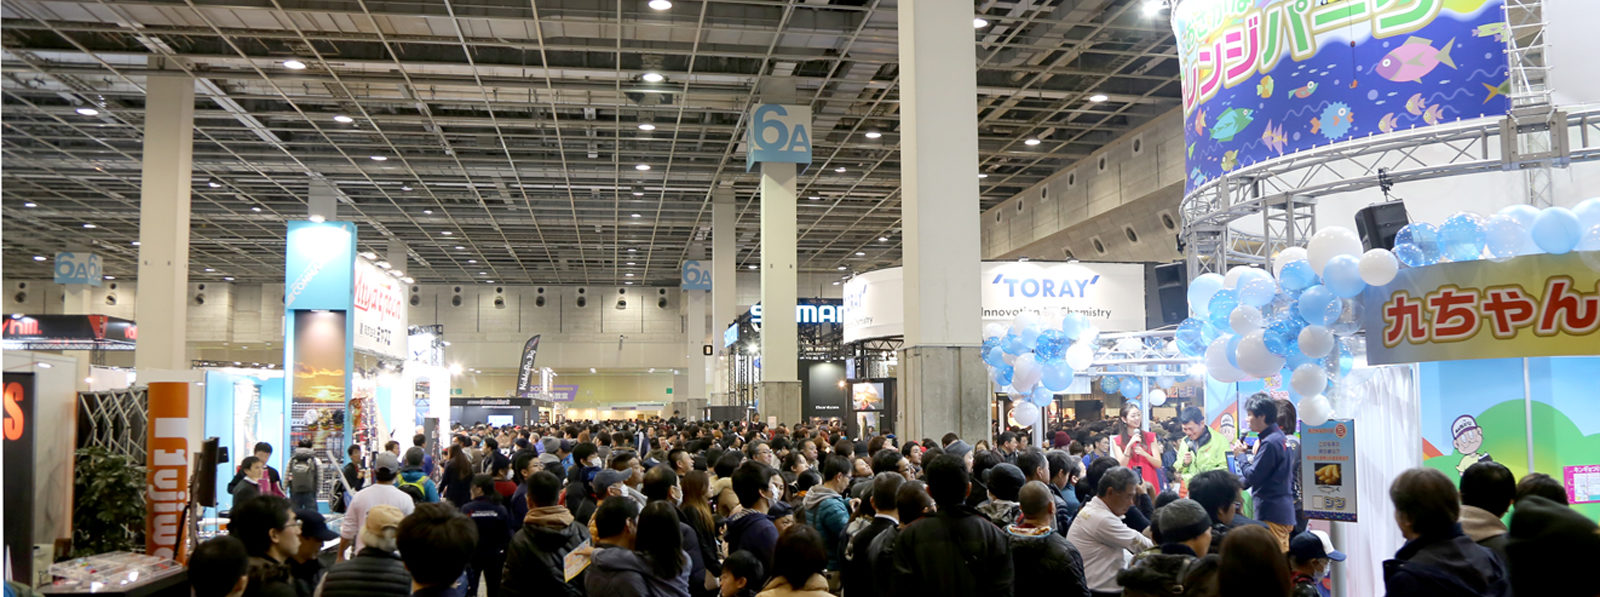 The Fishing Show OSAKA2018 is coming up soon!!  The hottest show that is   visited by over 55,000 people will be exhibiting the newest fishing gears   of Japan!